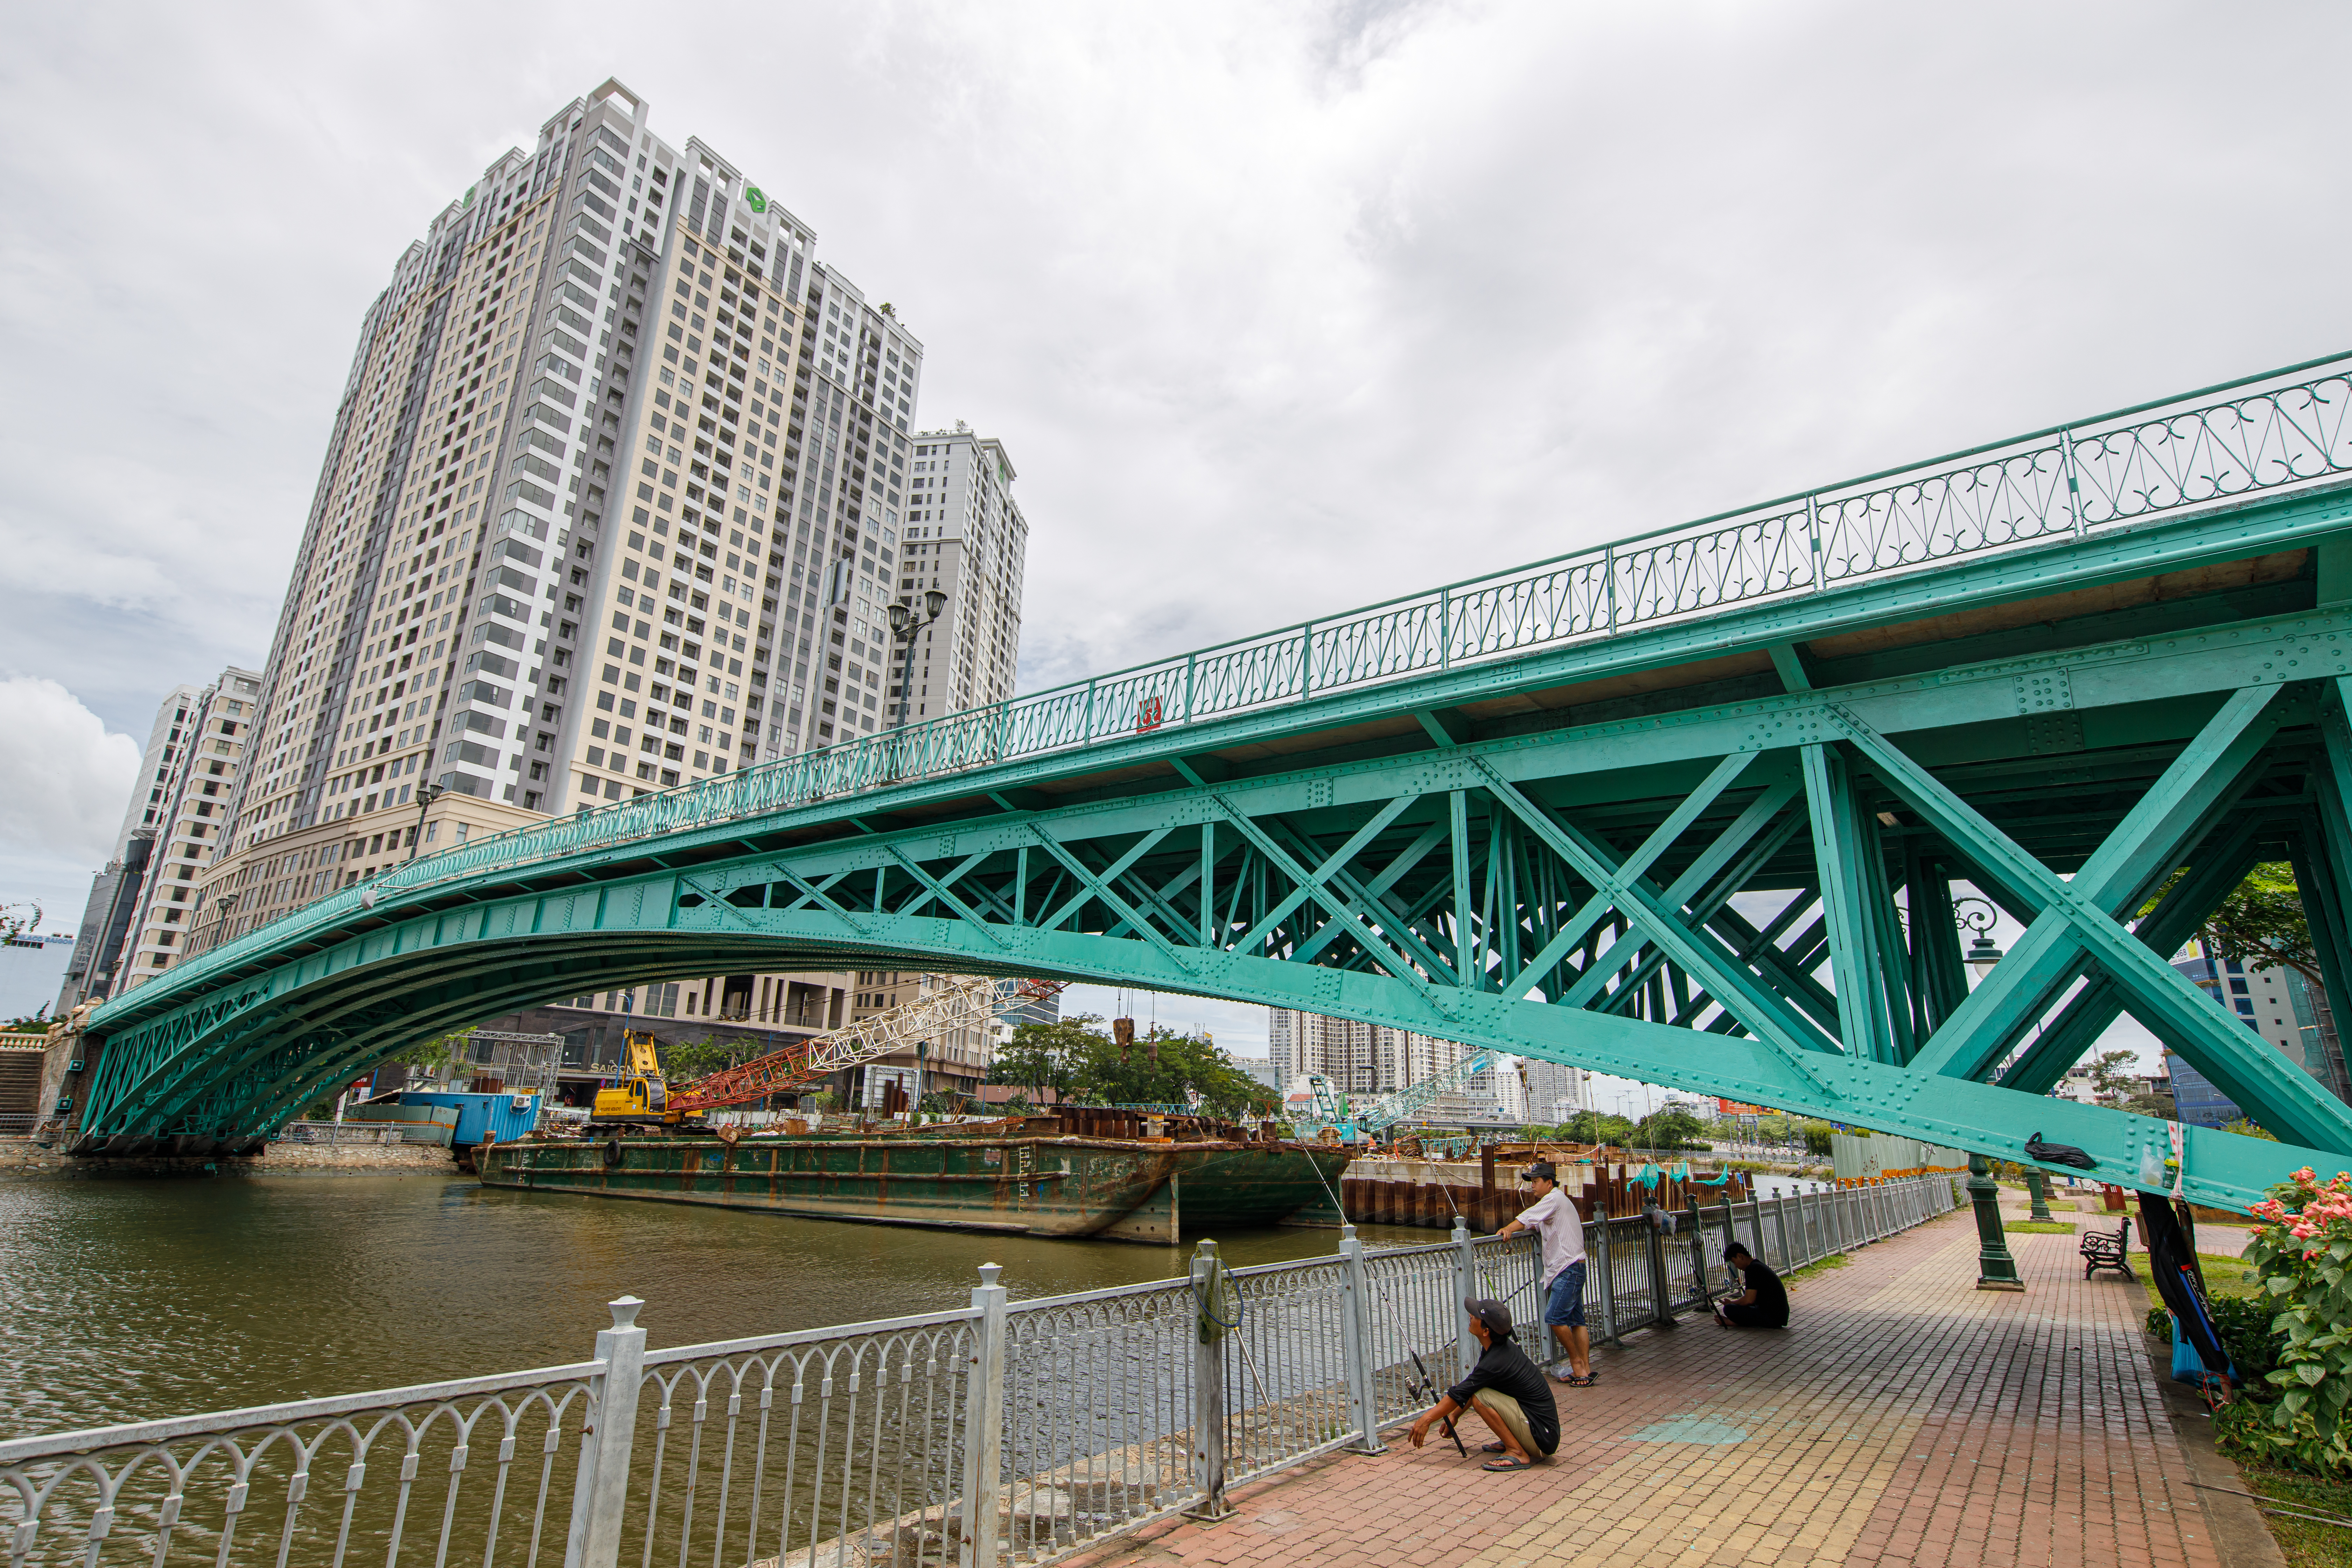 Cau Mong Bridge 2